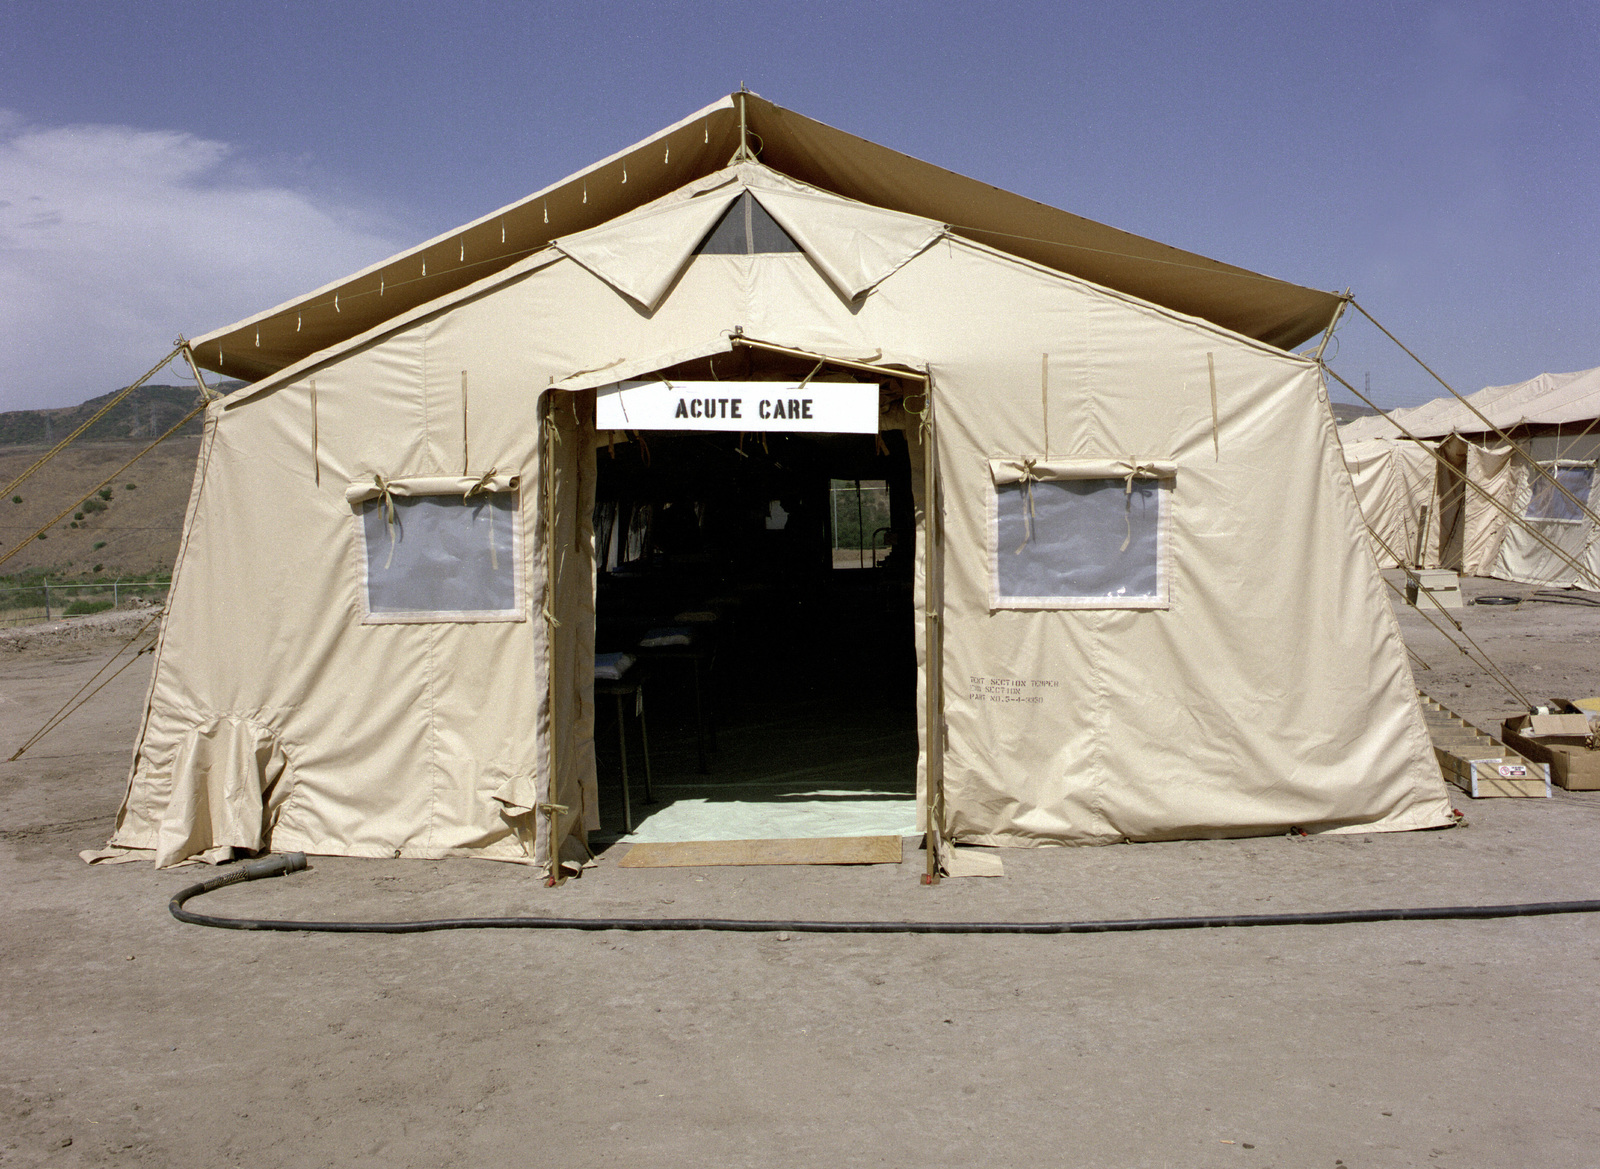 A temper tent erected to be used as an acute care ward at